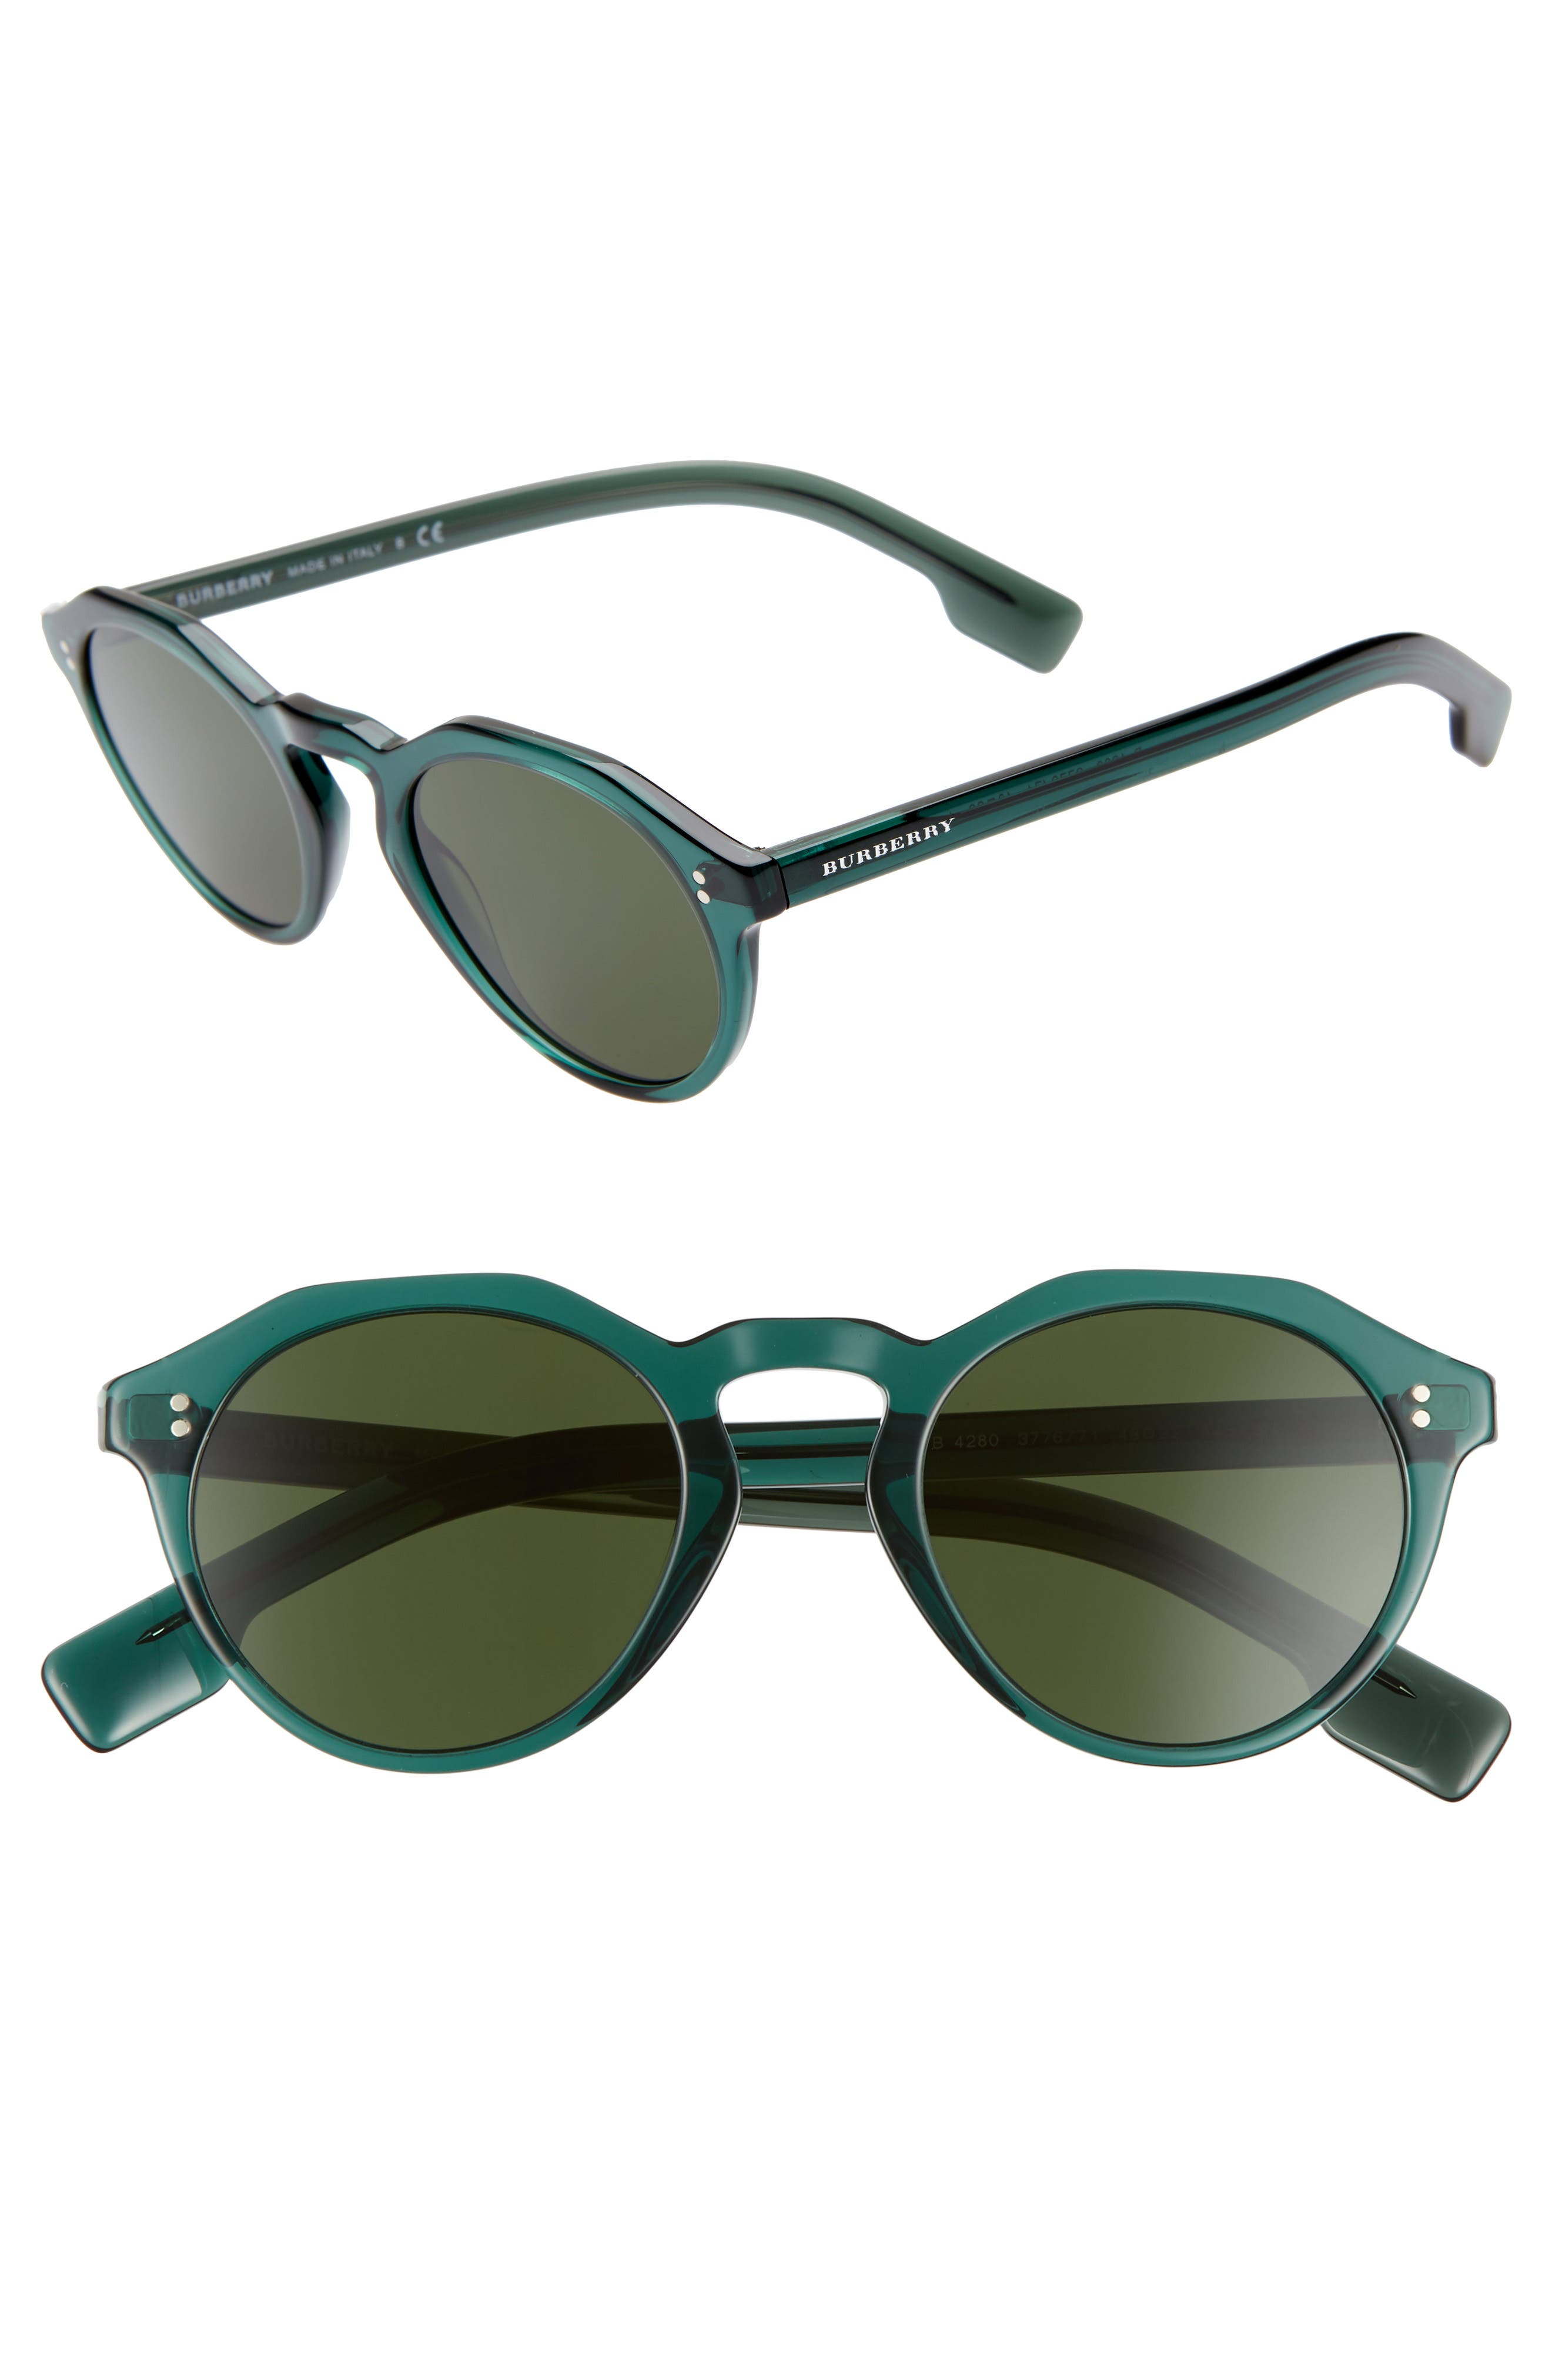 48mm Round Sunglasses,                             Main thumbnail 1, color,                             GREEN/ GREEN SOLID